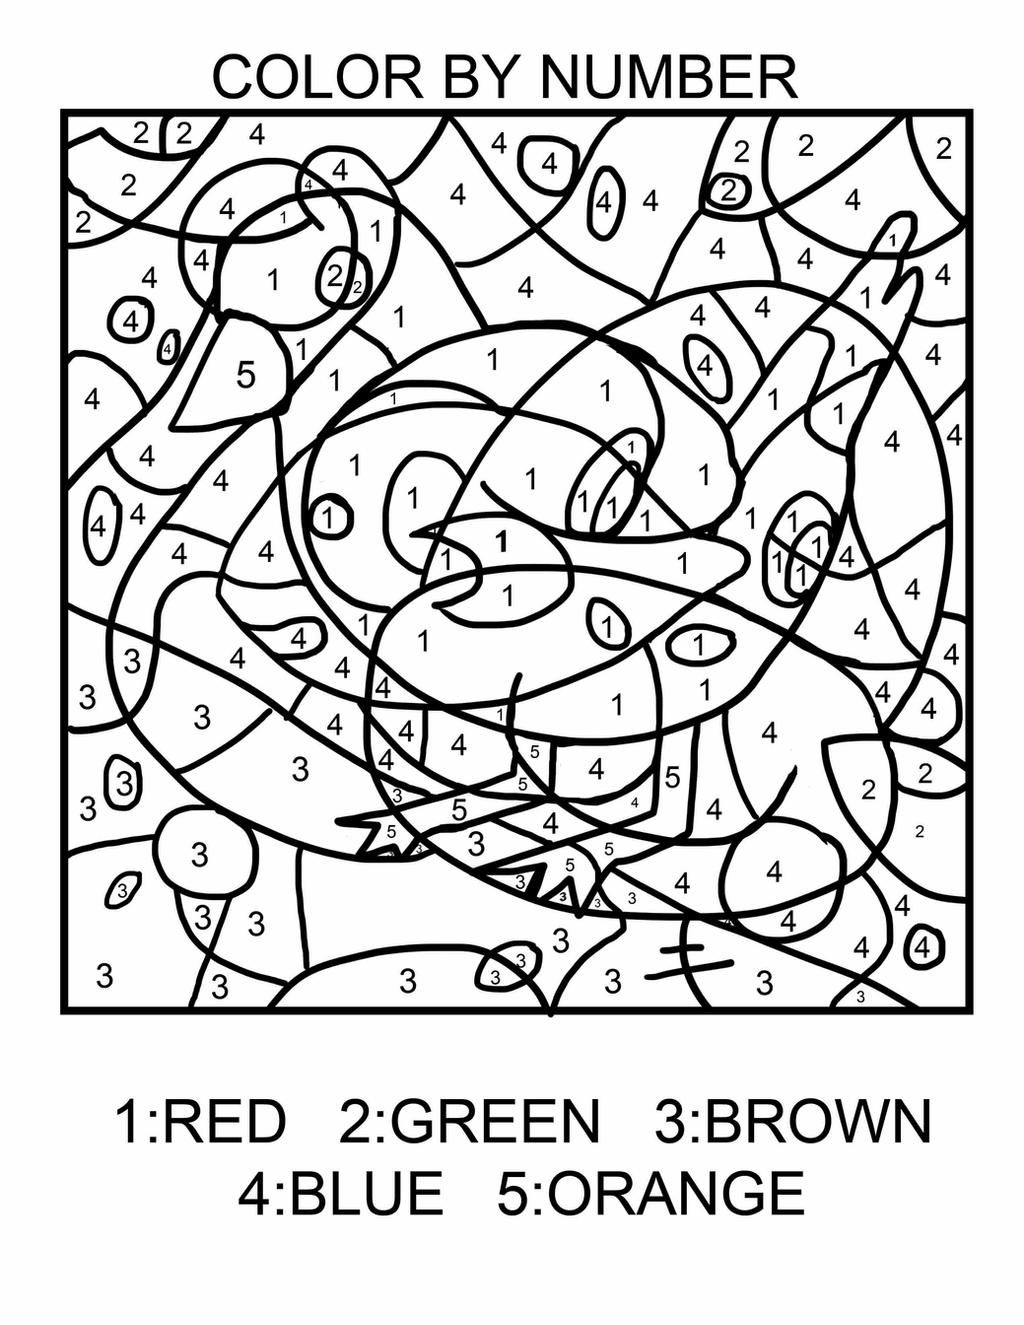 coloring art for grade 3 new easy color by number pt3 by nireleetsac on deviantart art for coloring grade 3